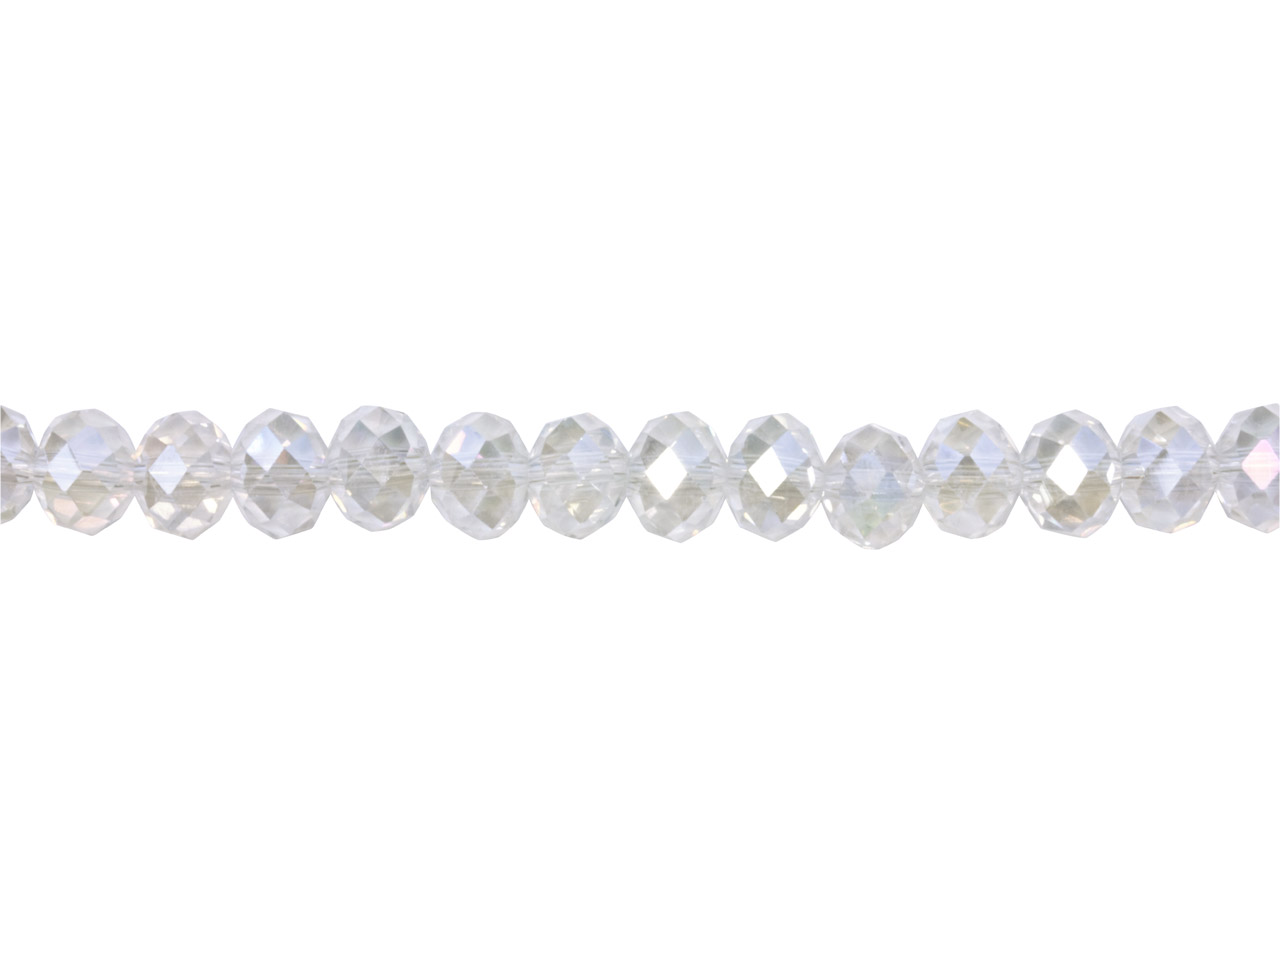 Crystal Faceted Rondelle Clear Ab  6x8mm Beads, 16